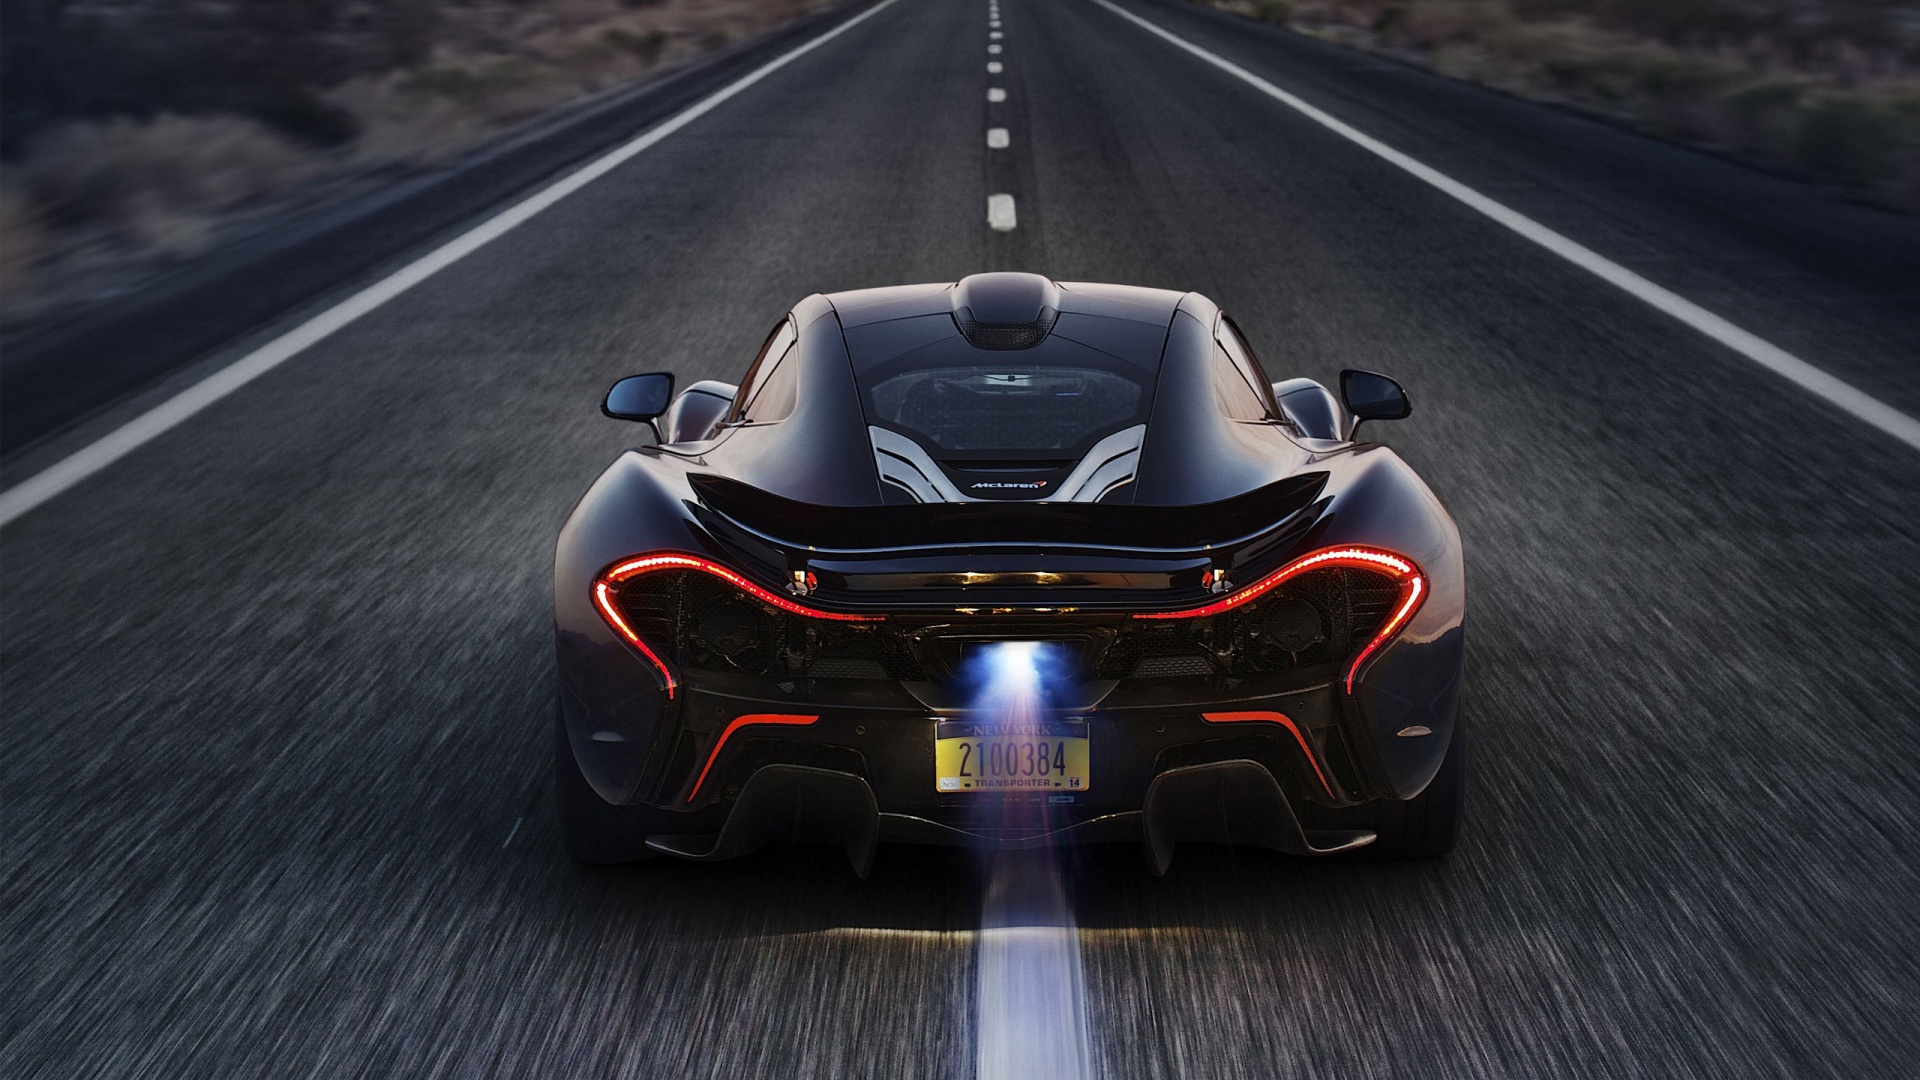 ... x 1440 Original. Description: Download McLaren P1 ...